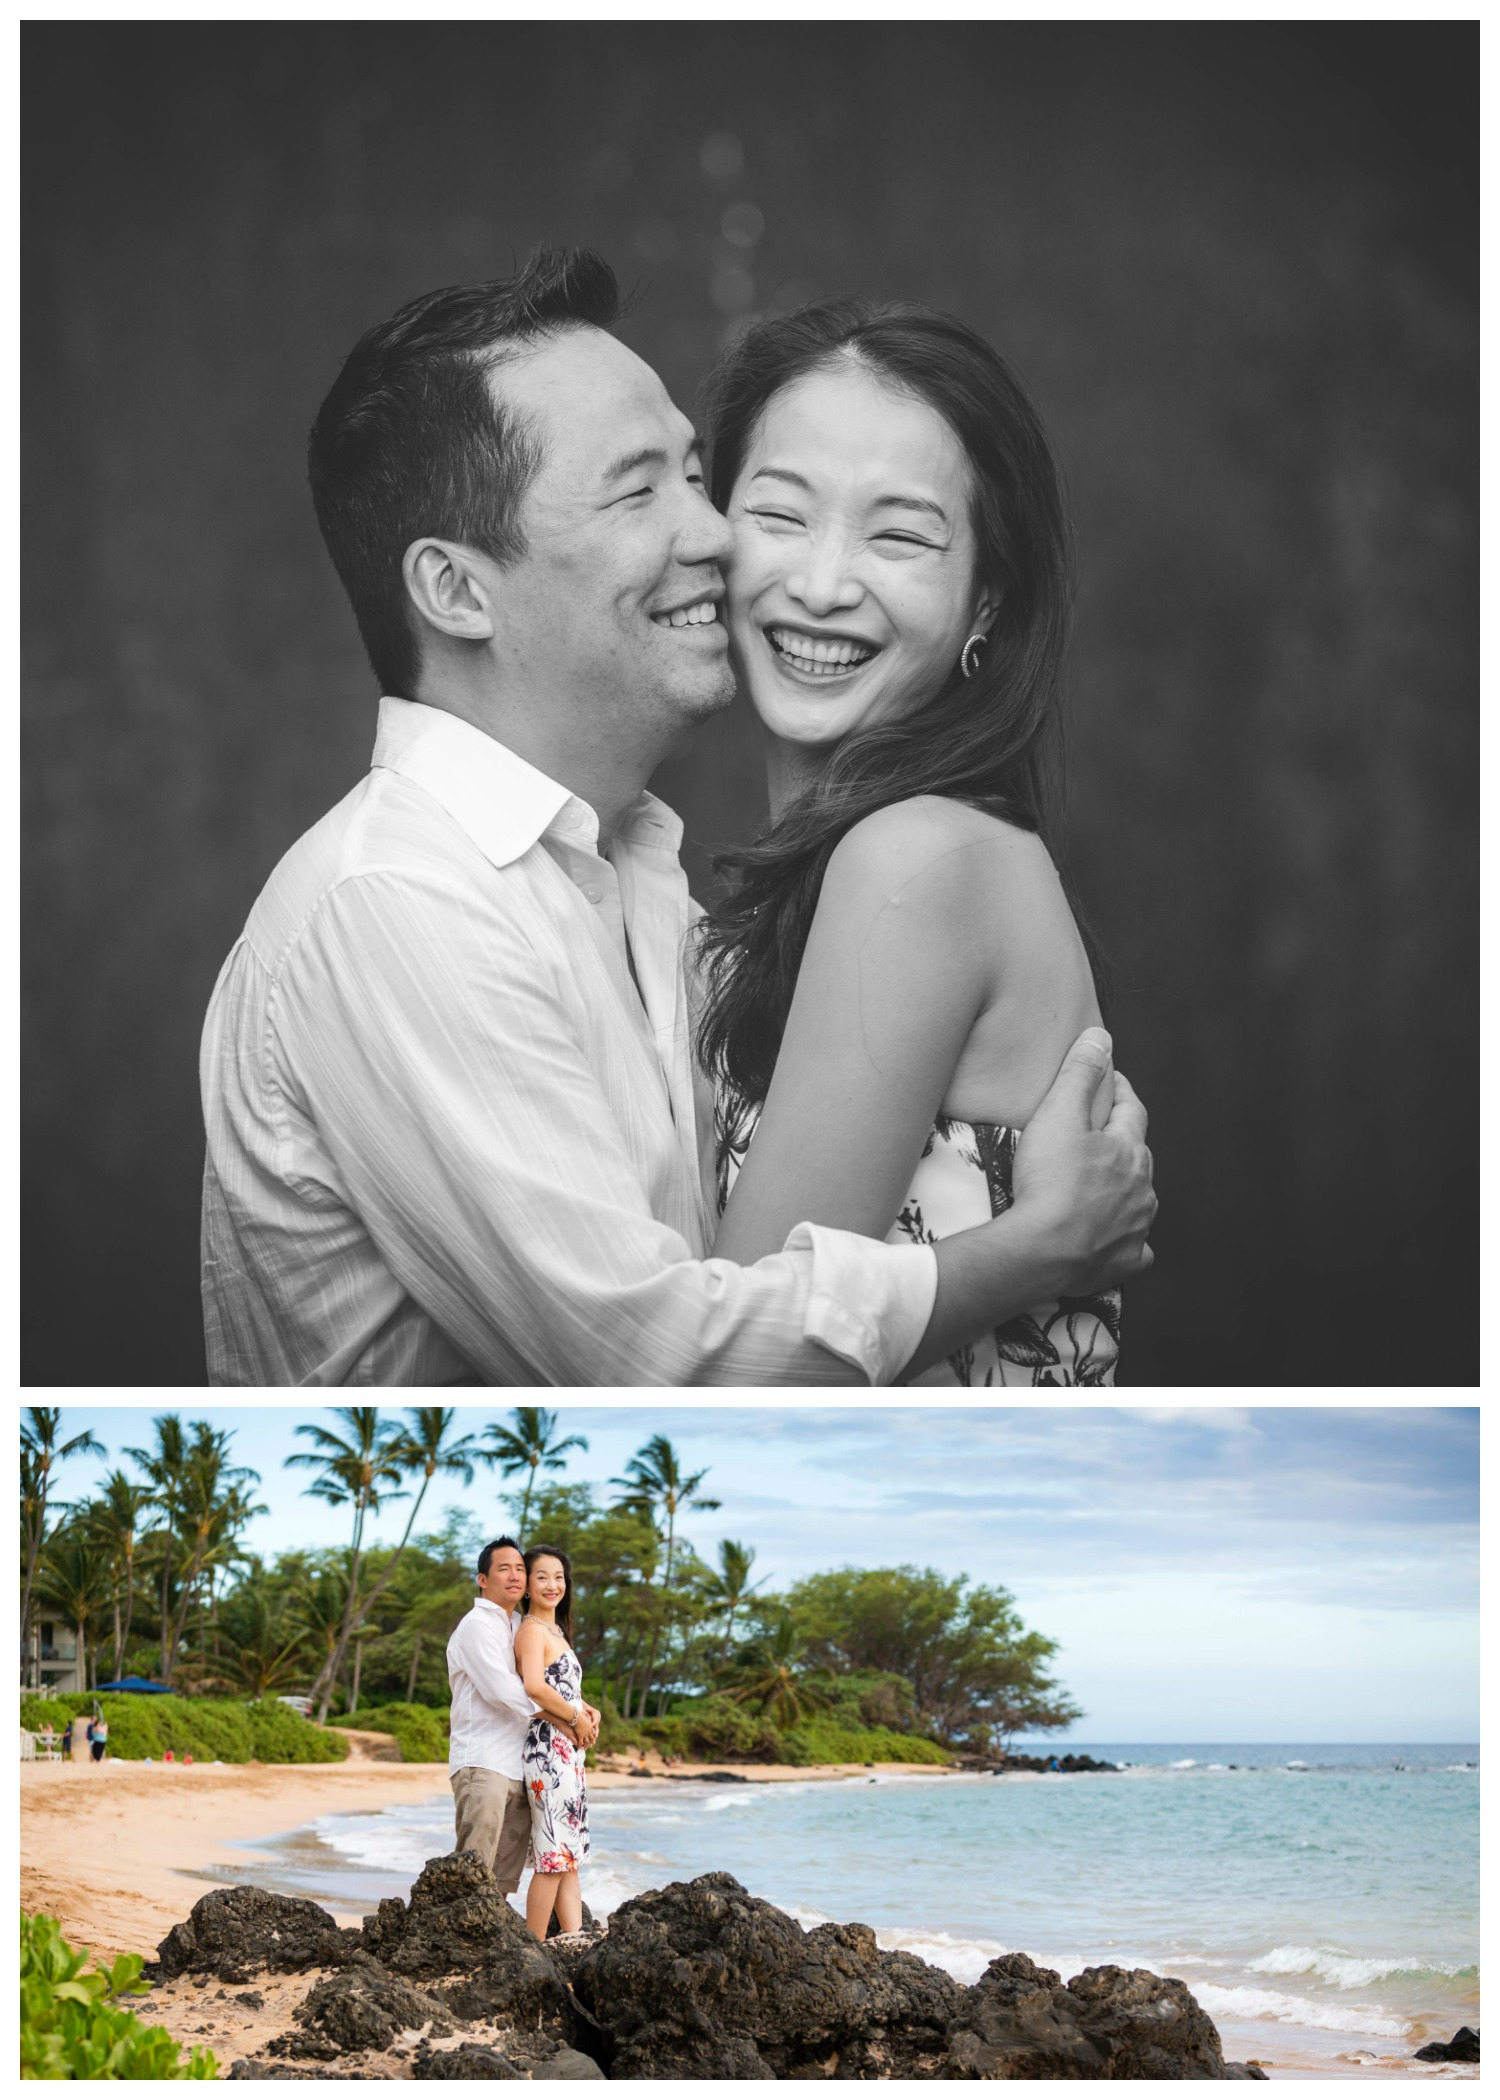 Pacific Dream Photography - Hawaii Photographer - Portrait Photographer - Family Photographer - couples Photography - Engagement Photography - Maui Engagement Photography - Maui Sunset Photography